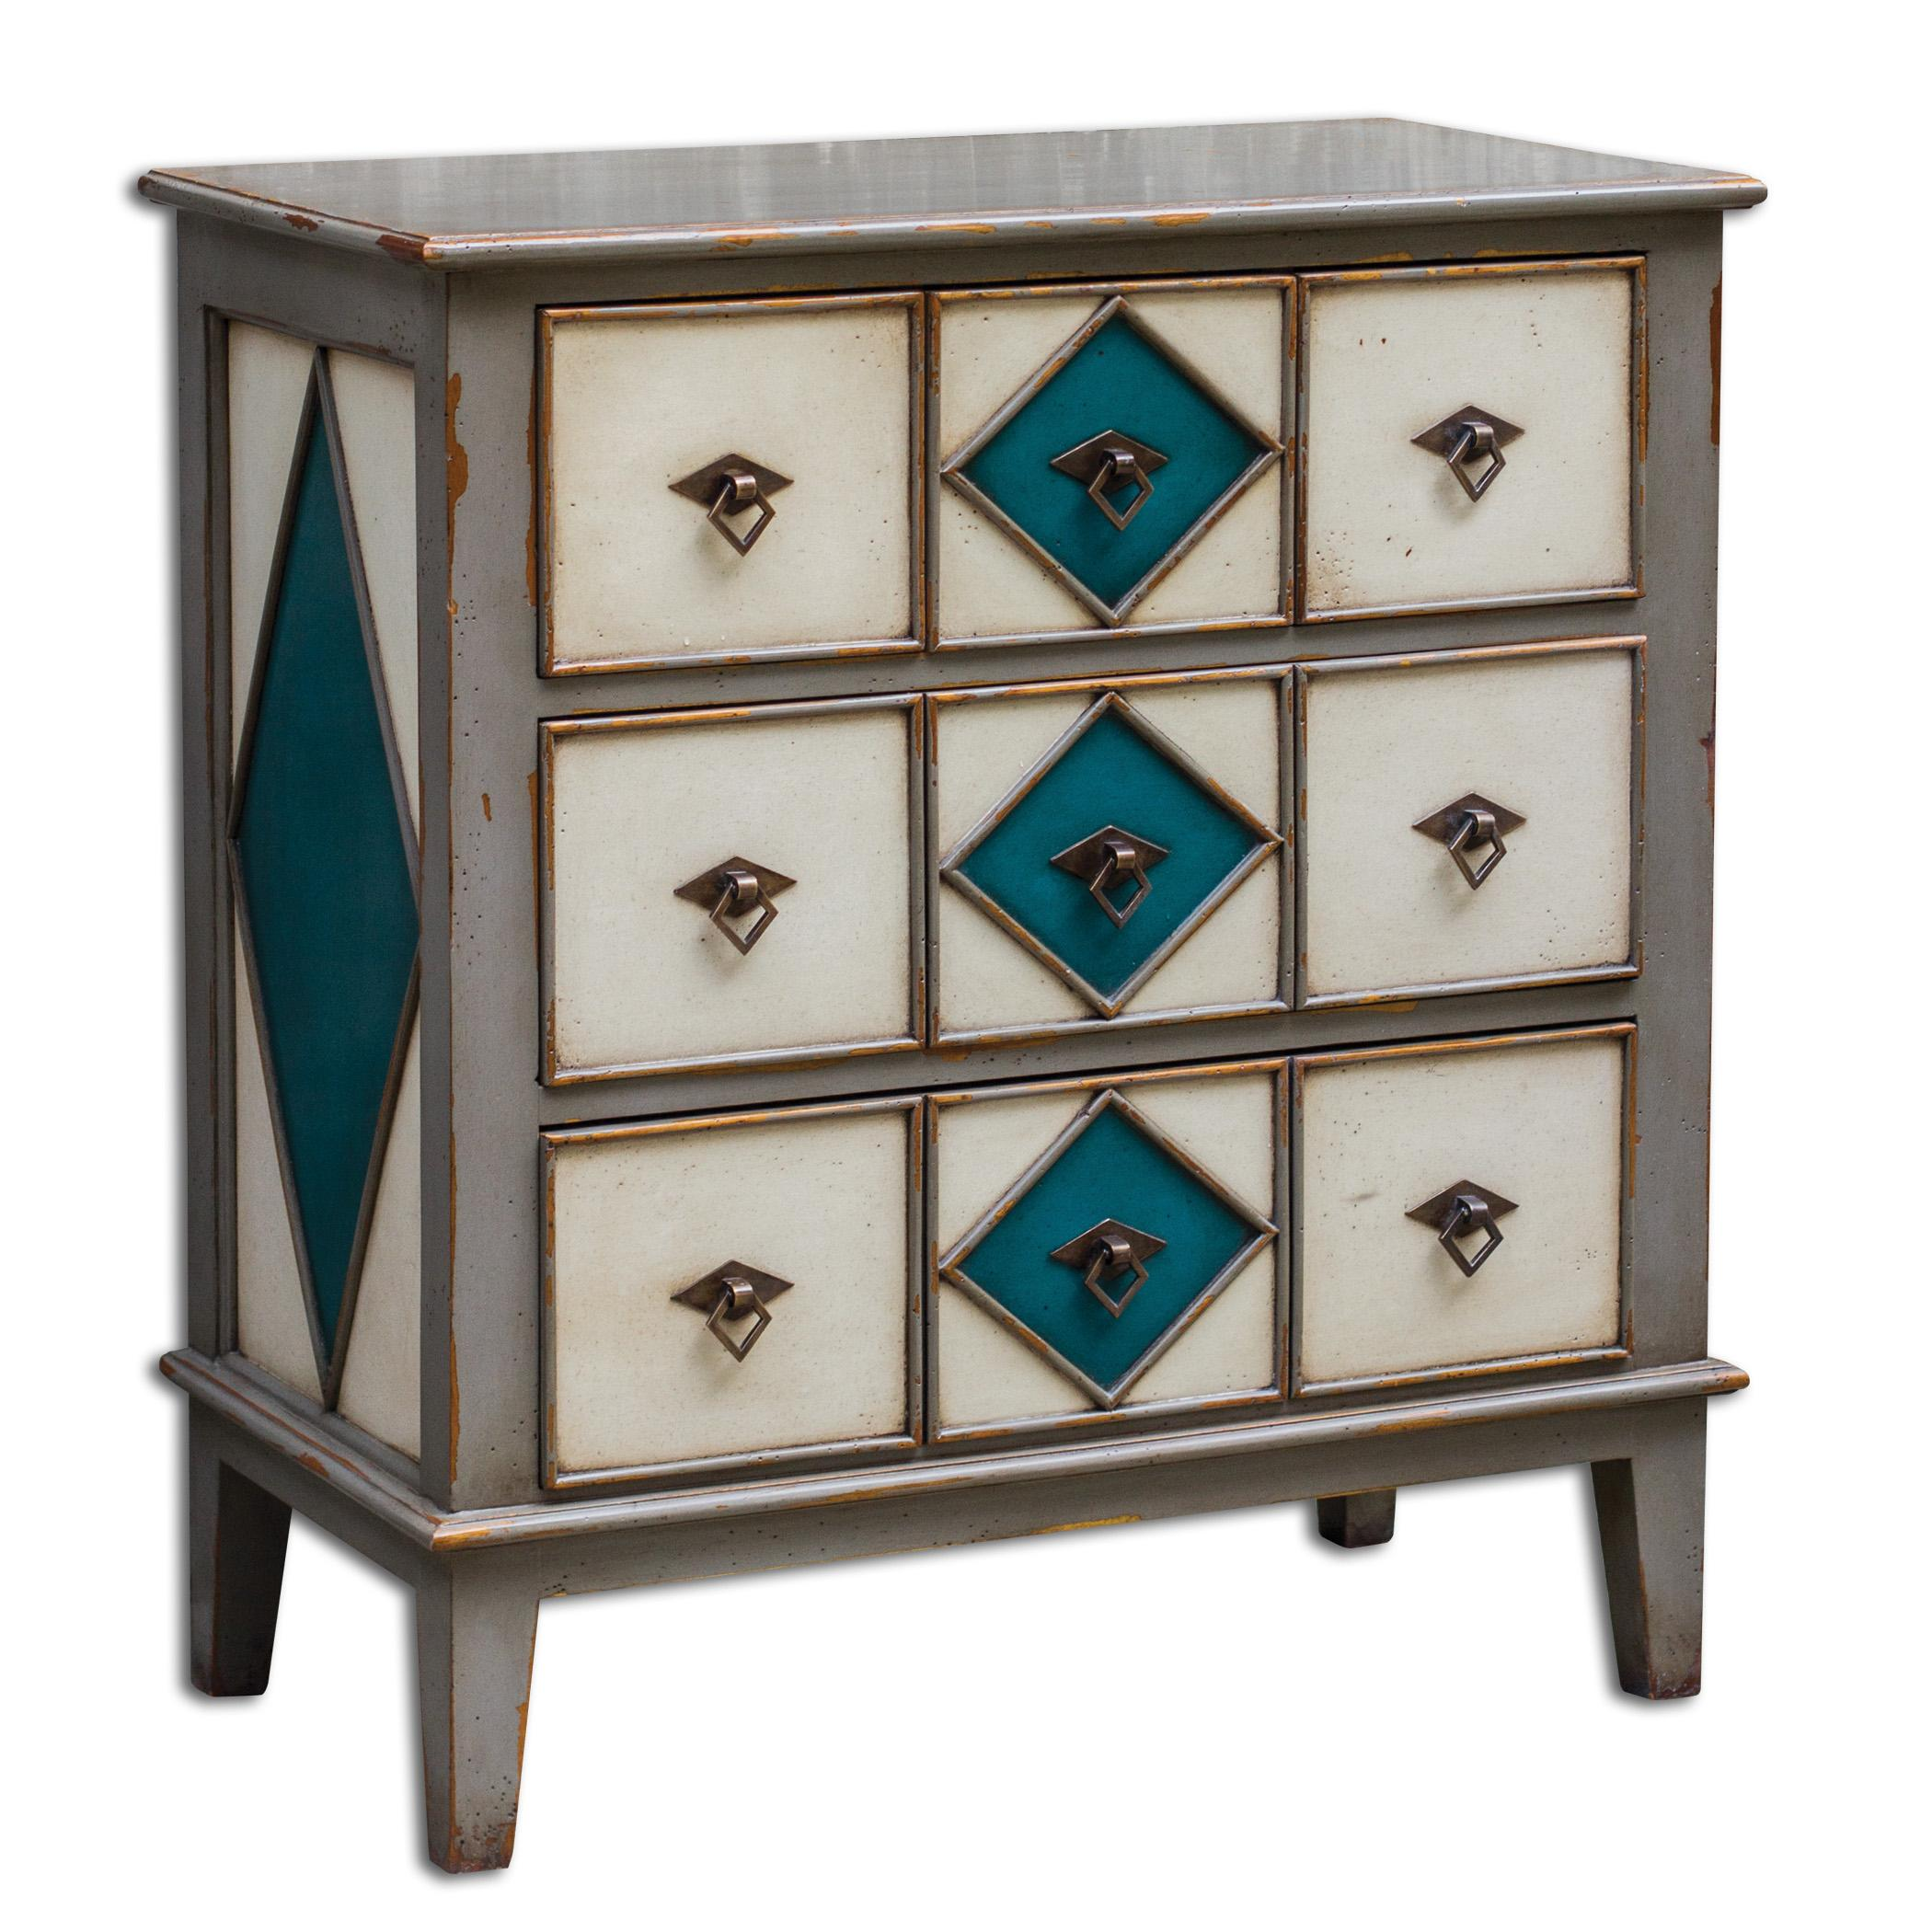 Uttermost Accent Furniture Kinzley Accent Chest - Item Number: 25620